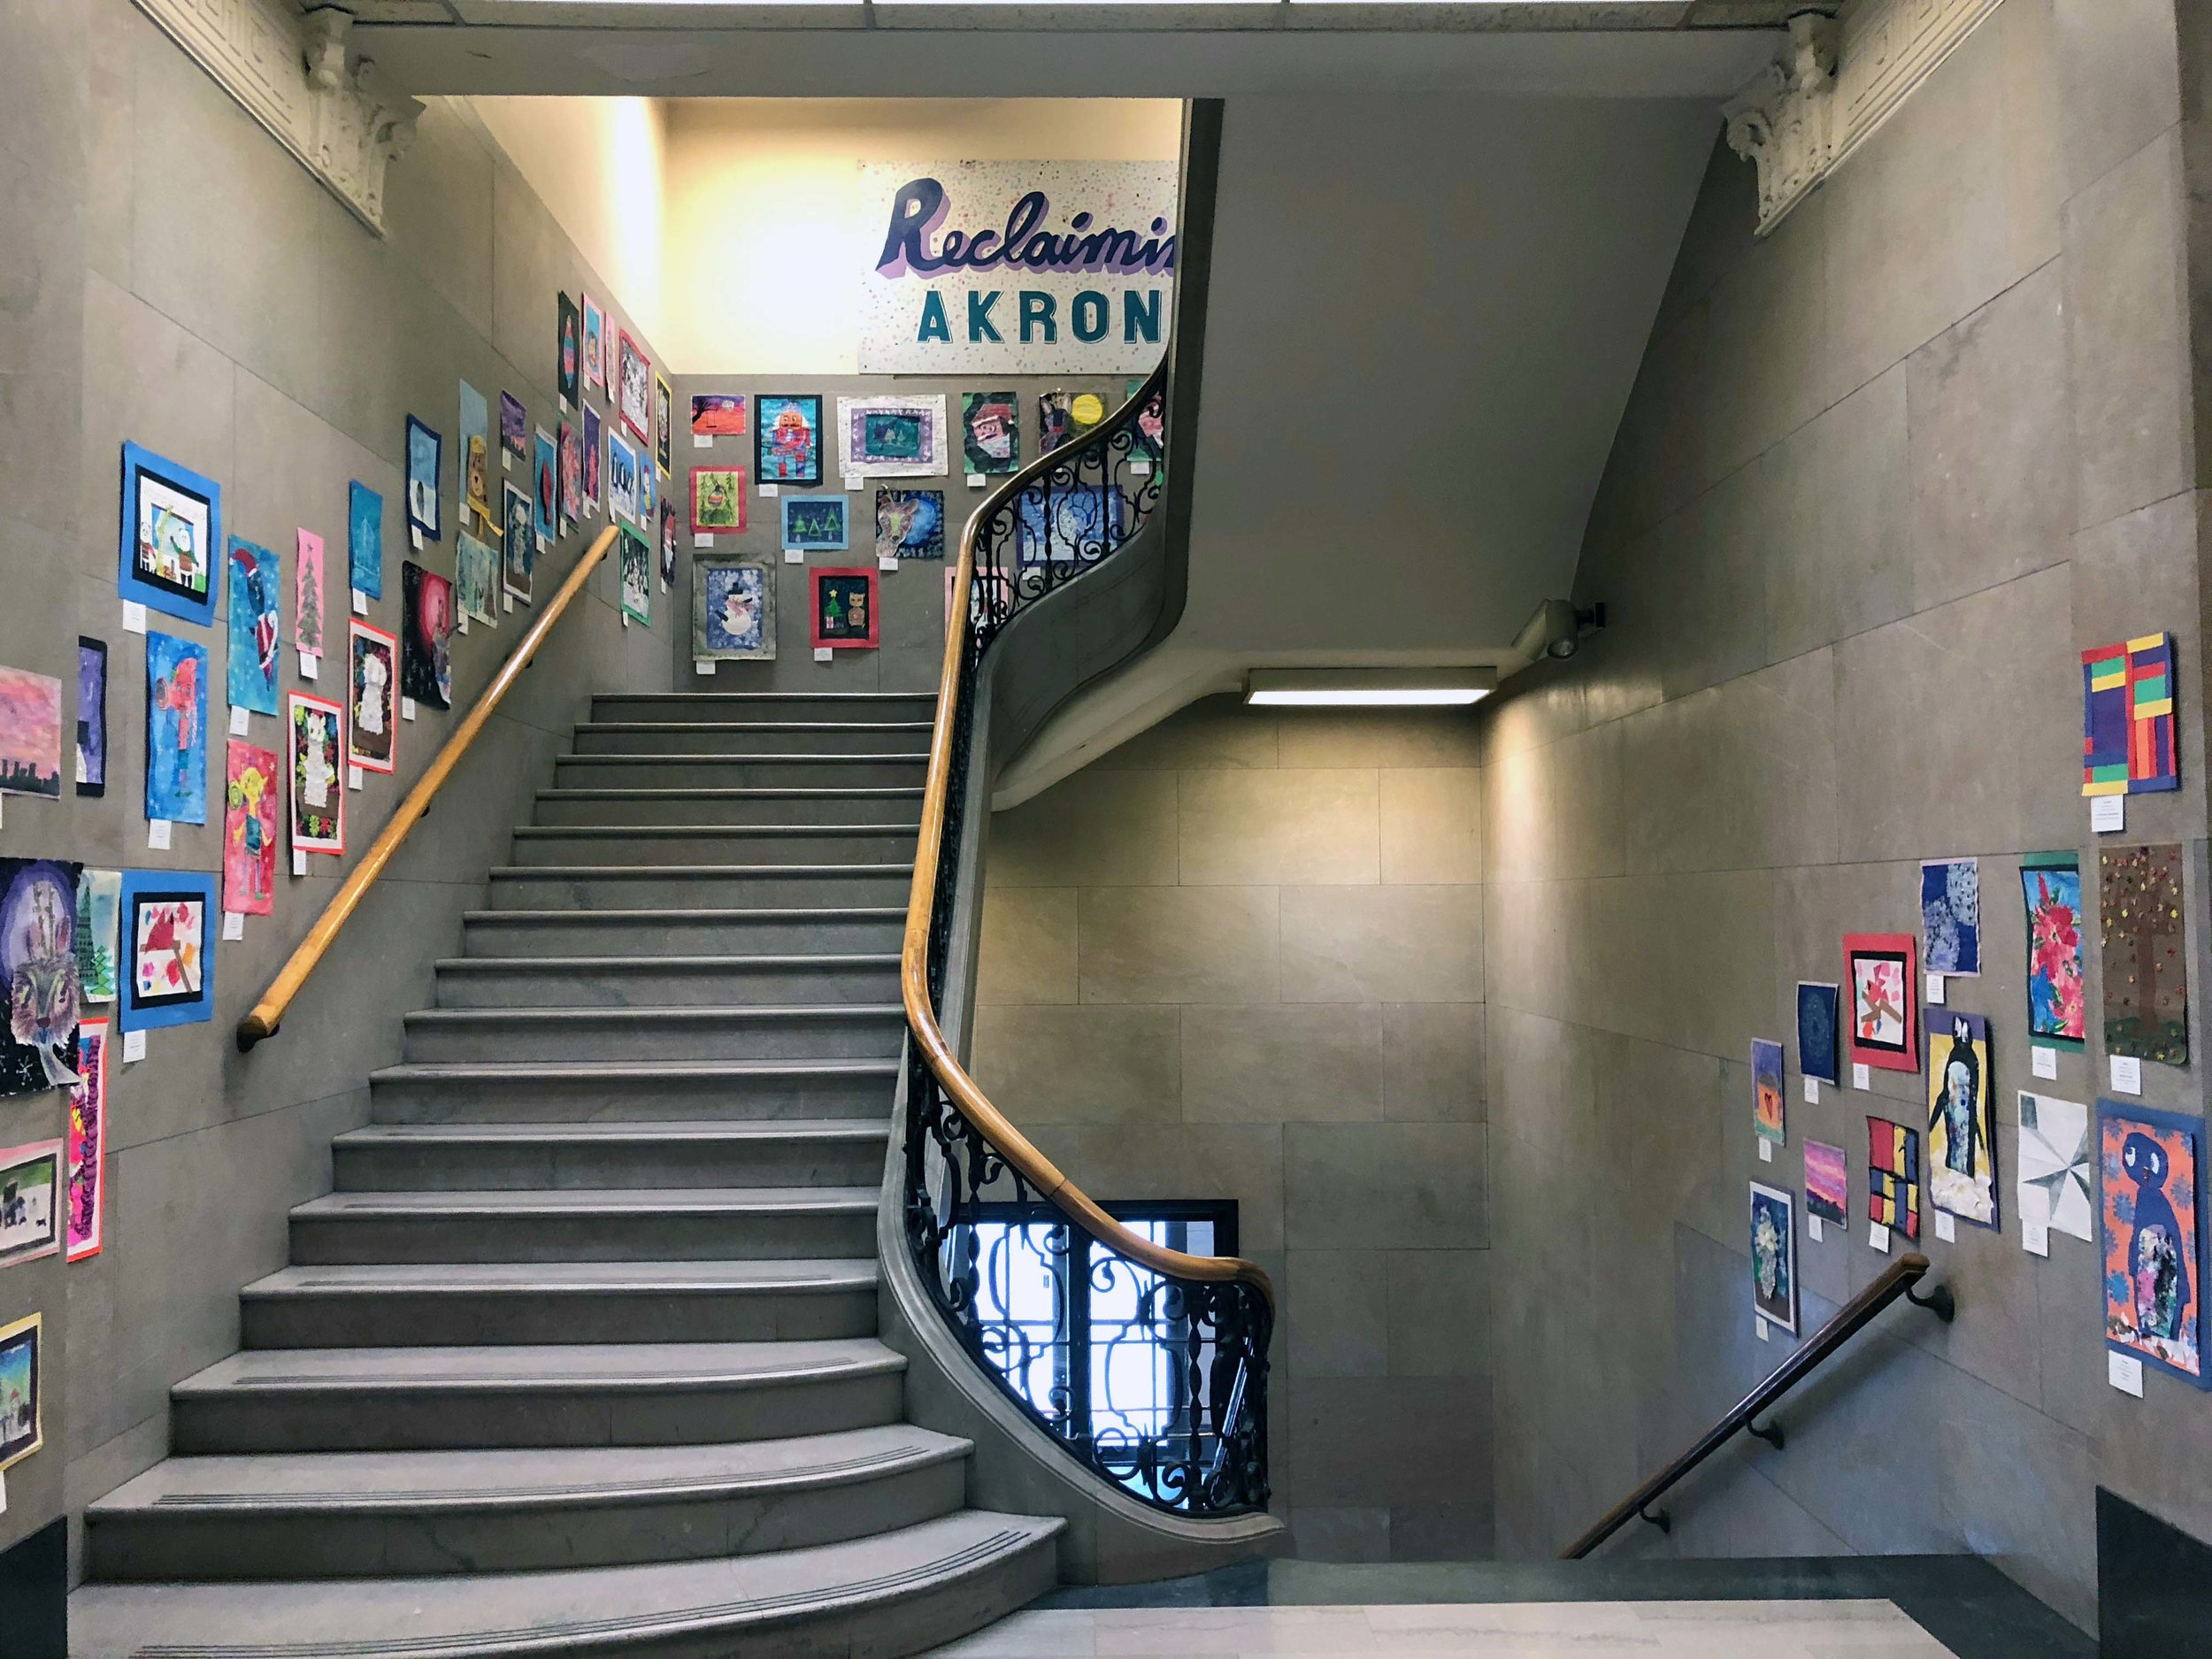 Reclaiming Akron